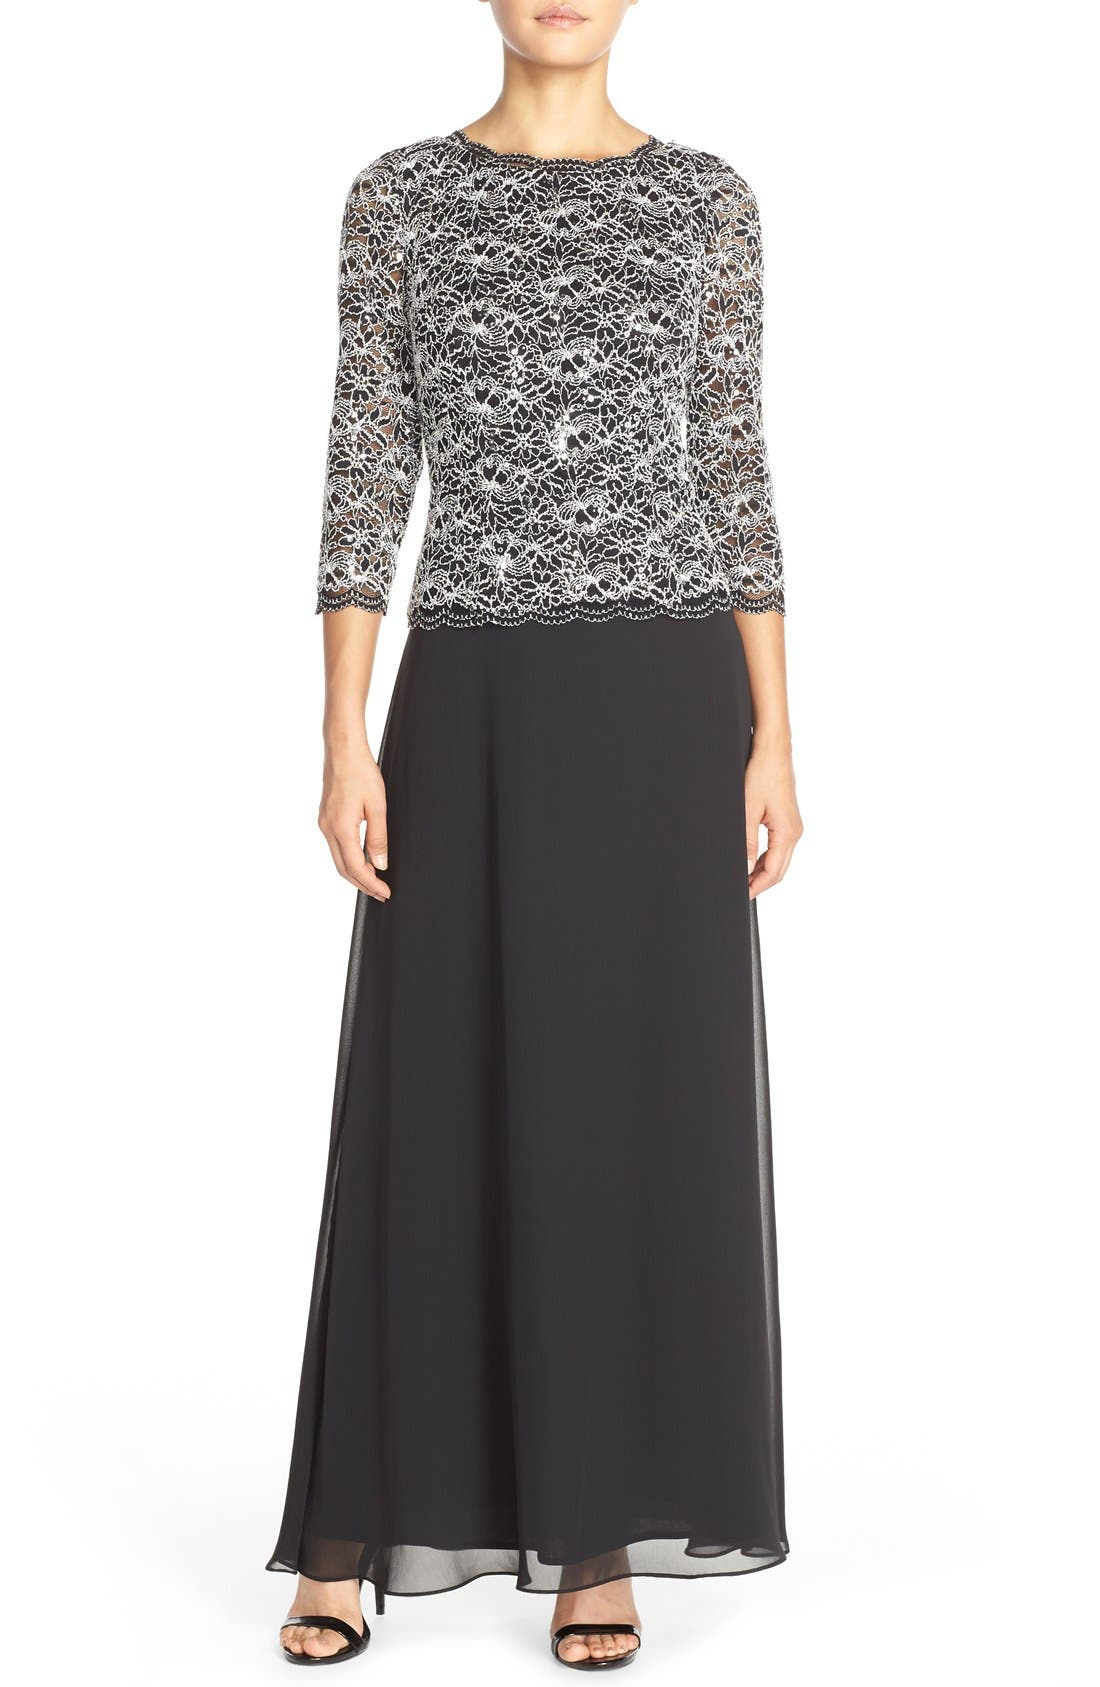 Alternate Image 1 Selected - Alex Evenings Lace & Chiffon Mock Two-Piece Gown (Regular & Petite)